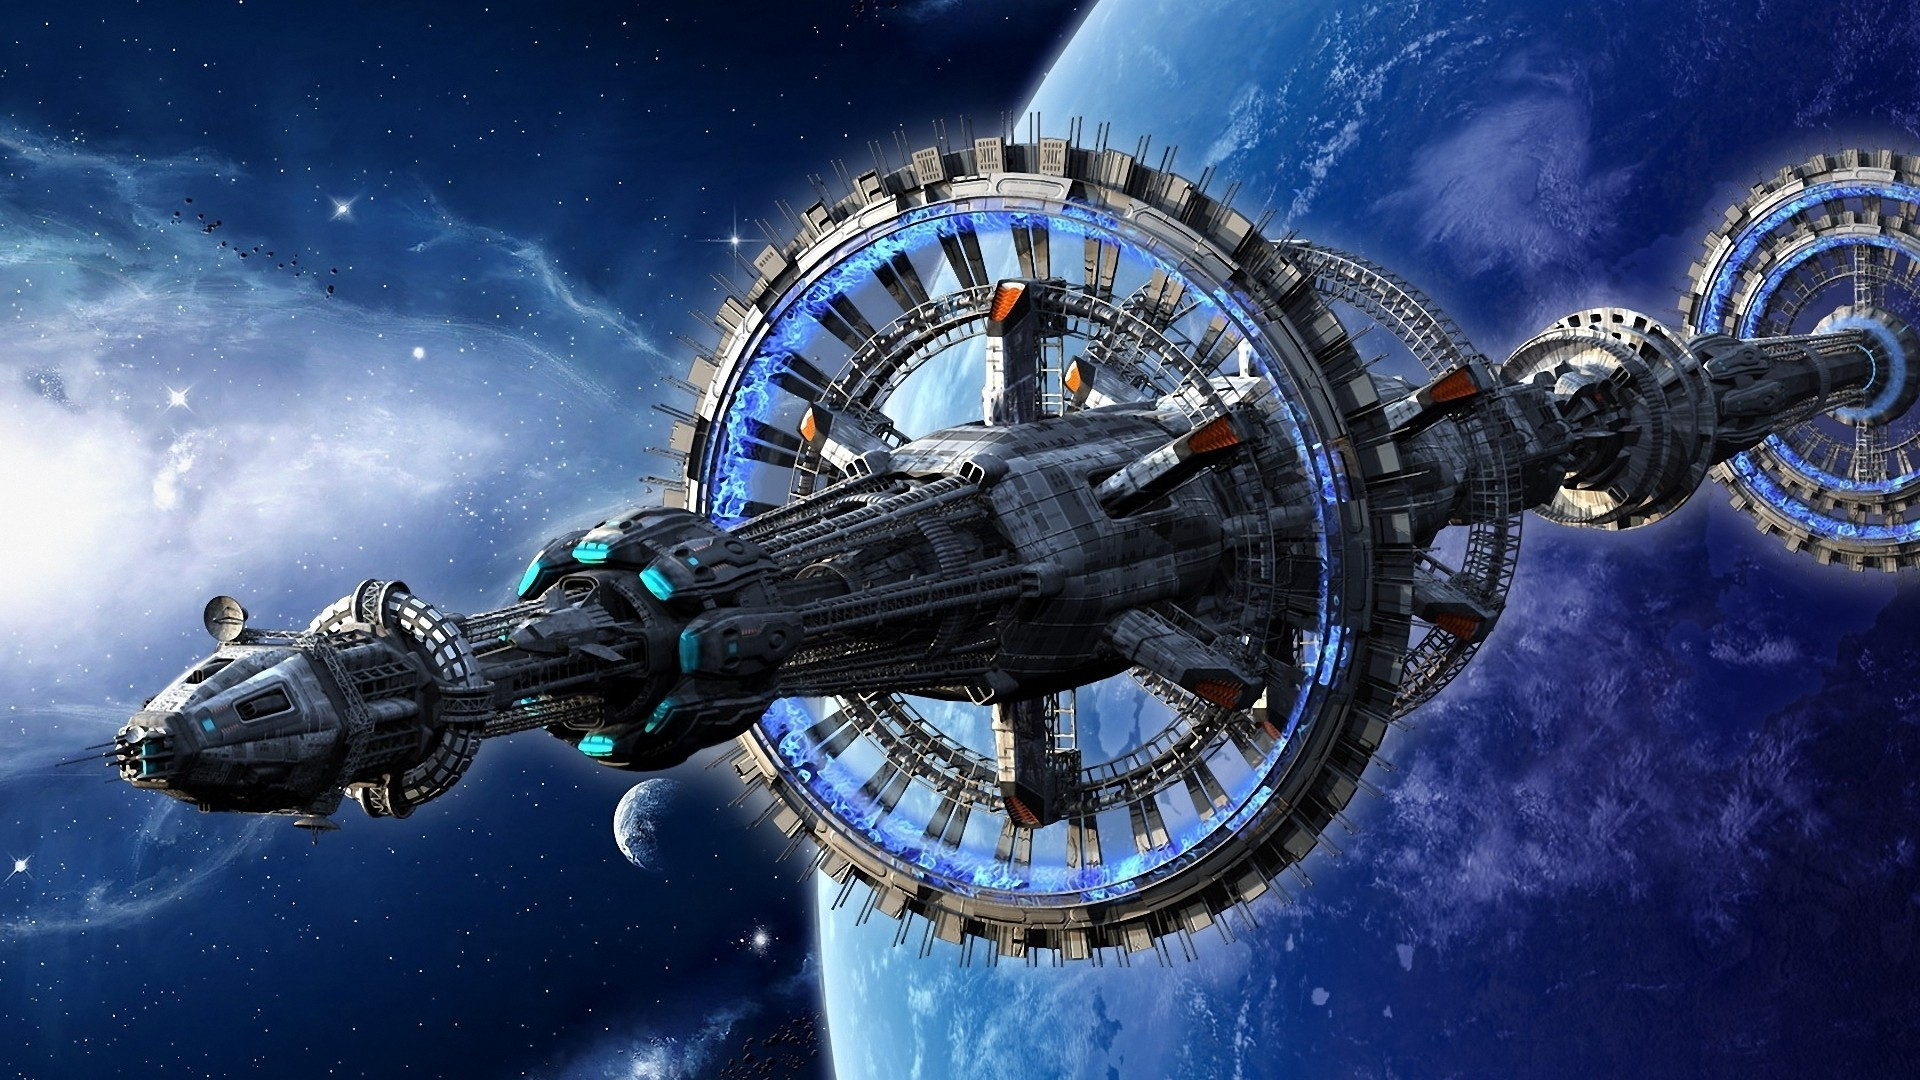 planets spaceships vehicles science fiction HD Wallpaper